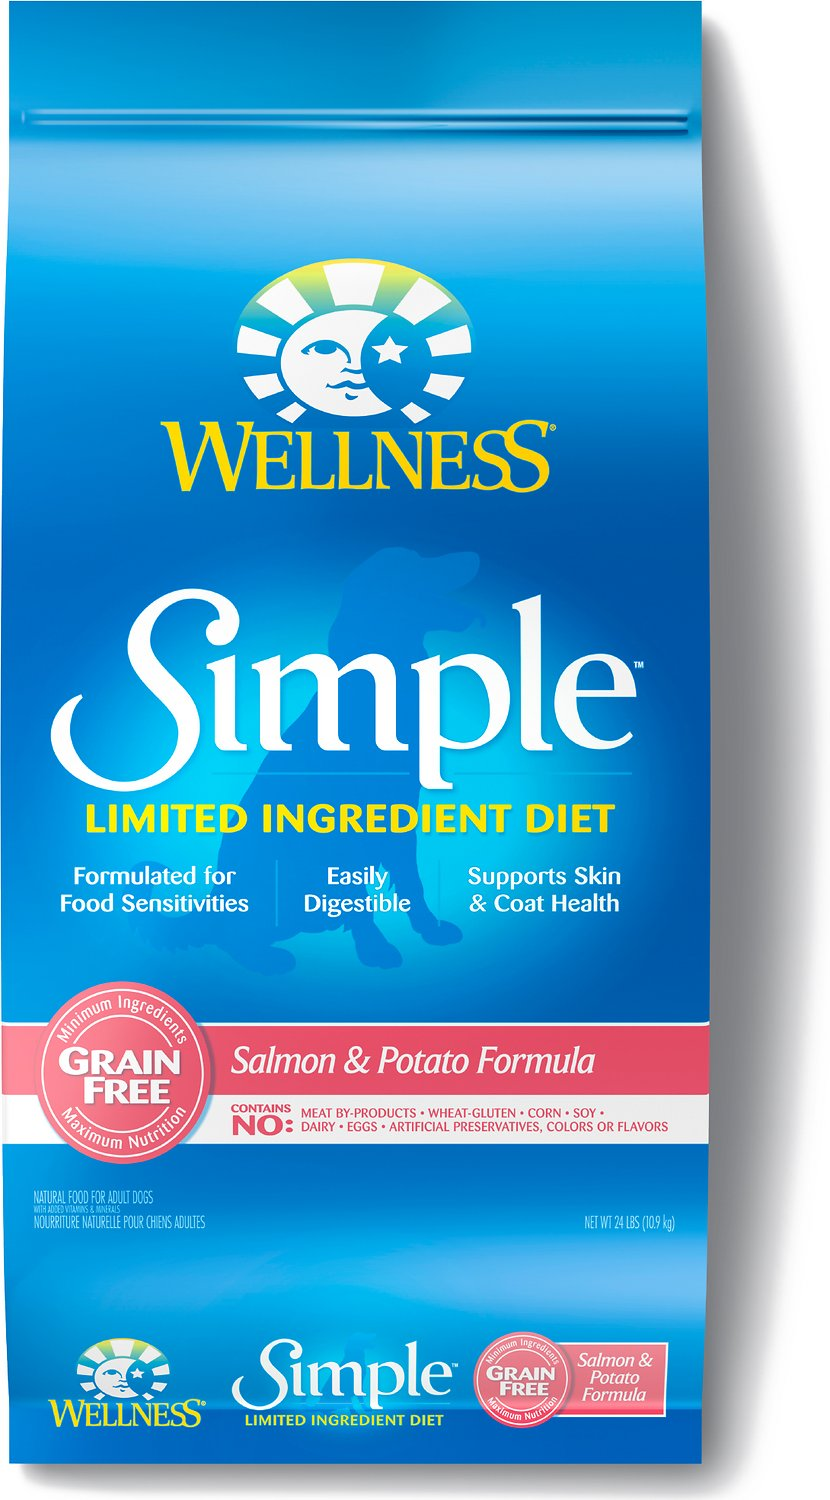 Wellness Simple Limited Ingredient Diet Grain-Free Salmon & Potato Formula Dry Dog Food Image